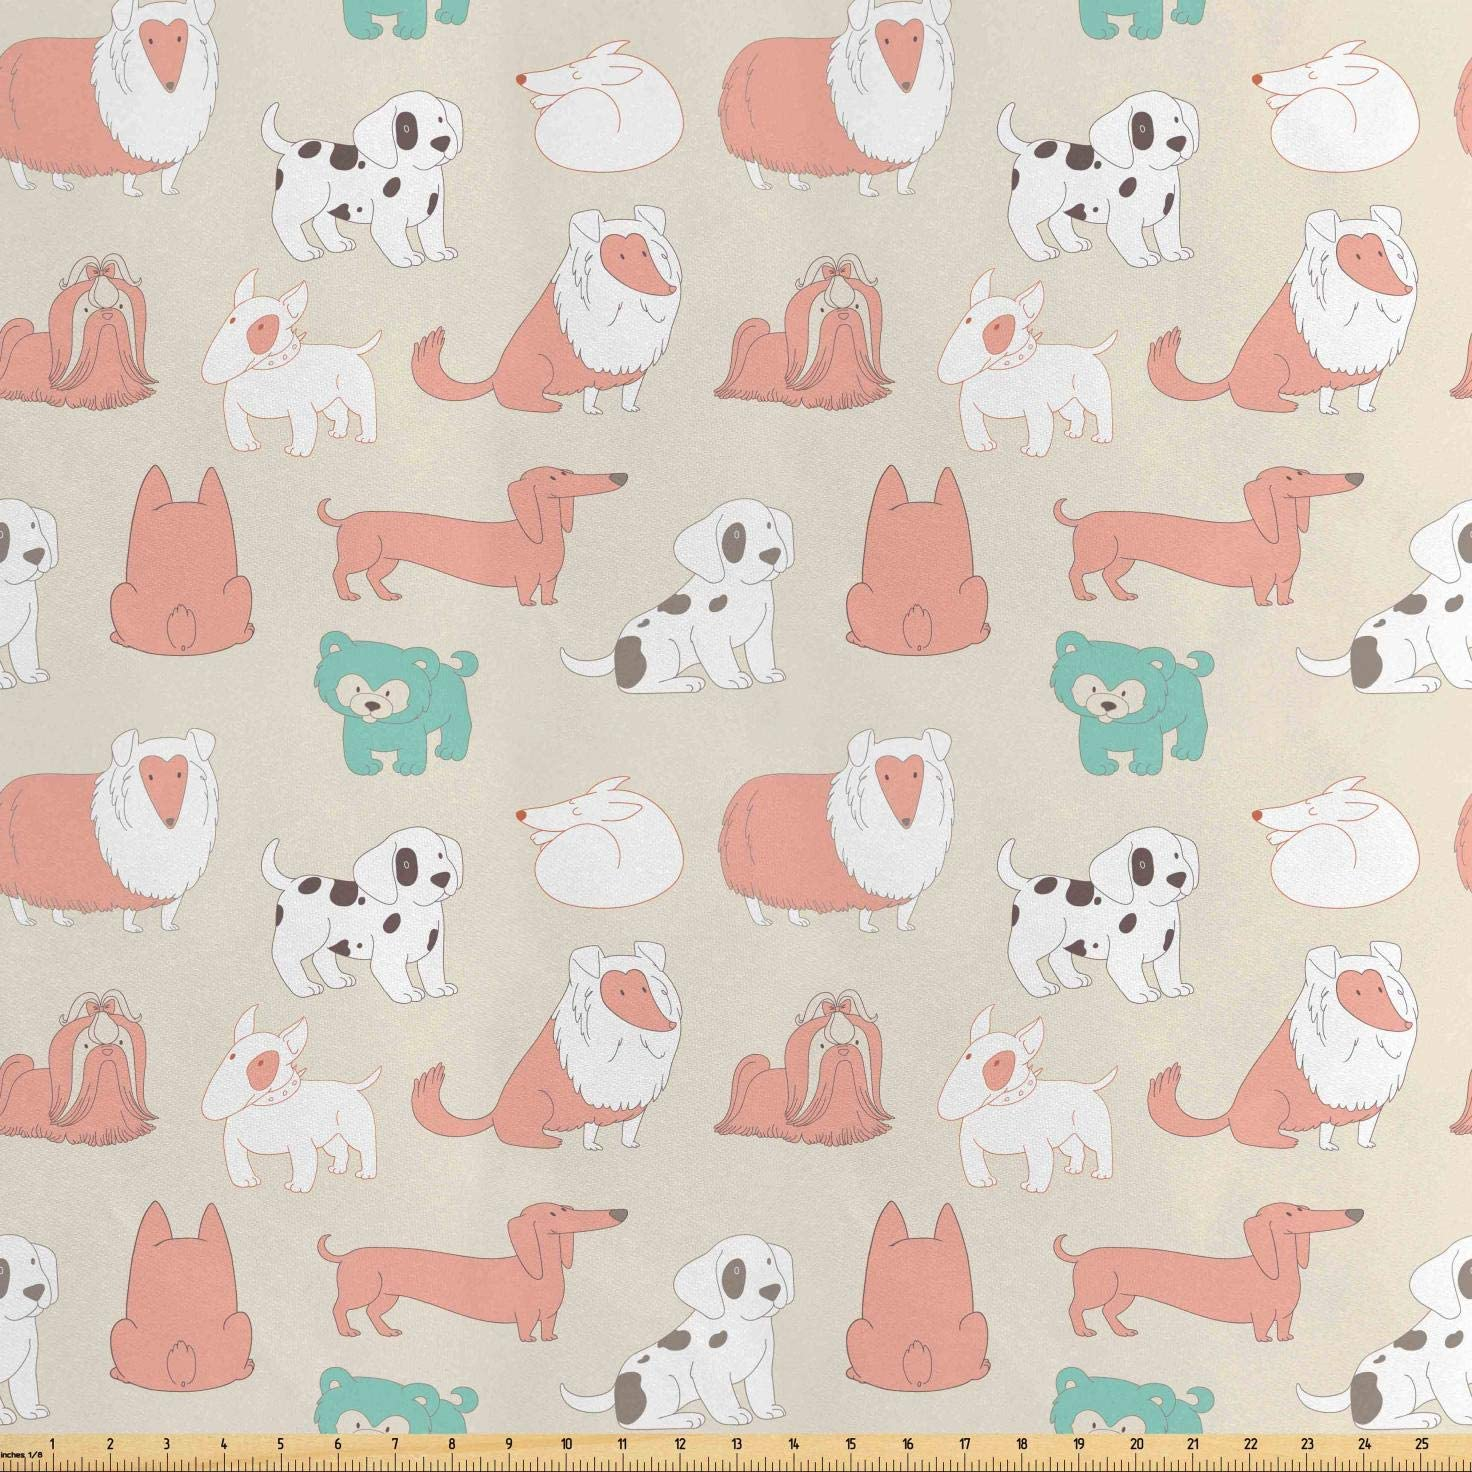 Lunarable Puppy Fabric by The Yard, Baby Dalmation Dogs Beagle Labrador Terrier Pets Childish Playroom Pastel Cartoon, Decorative Satin Fabric for Home Textiles and Crafts, 3 Yards, Multicolor